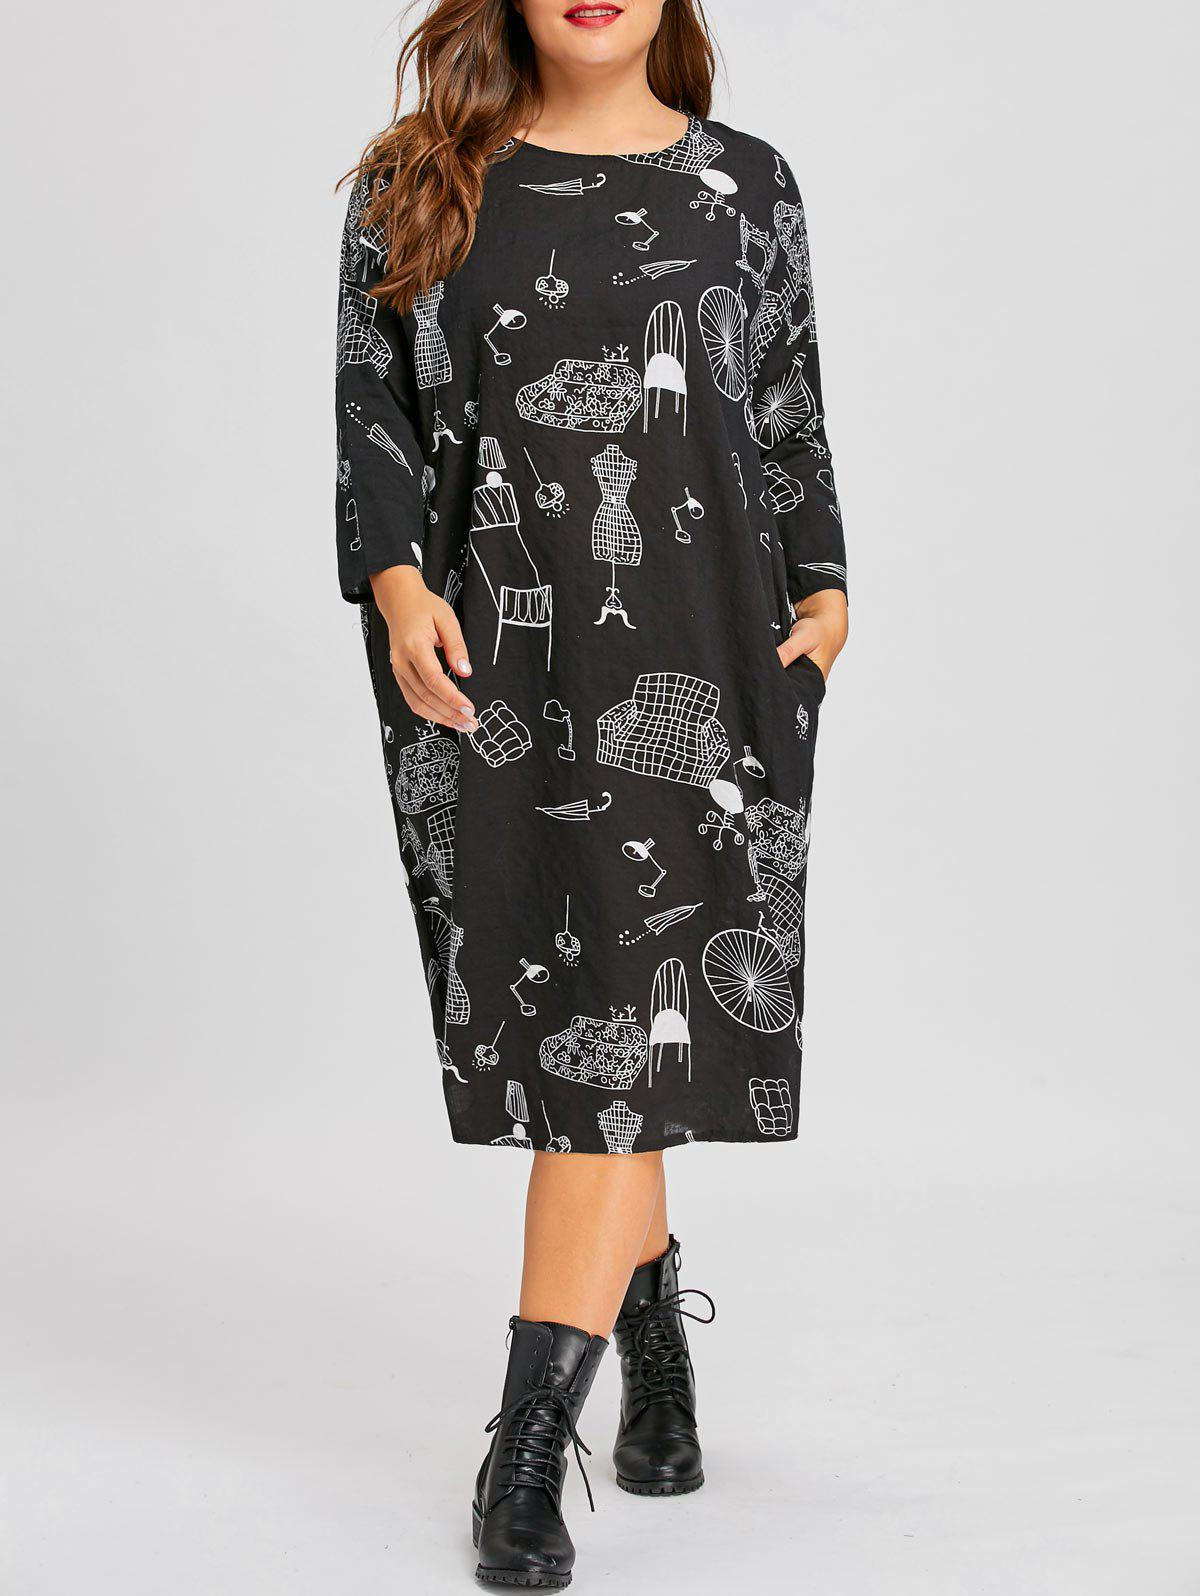 Plus Size Graphic Loose Midi Tunic DressWOMEN<br><br>Size: ONE SIZE; Color: BLACK; Style: Casual; Material: Polyester; Silhouette: A-Line; Dresses Length: Mid-Calf; Neckline: Scoop Neck; Sleeve Length: Long Sleeves; Embellishment: Pockets; Pattern Type: Graphic,Print; With Belt: No; Season: Fall,Winter; Weight: 0.2600kg; Package Contents: 1 x Dress;